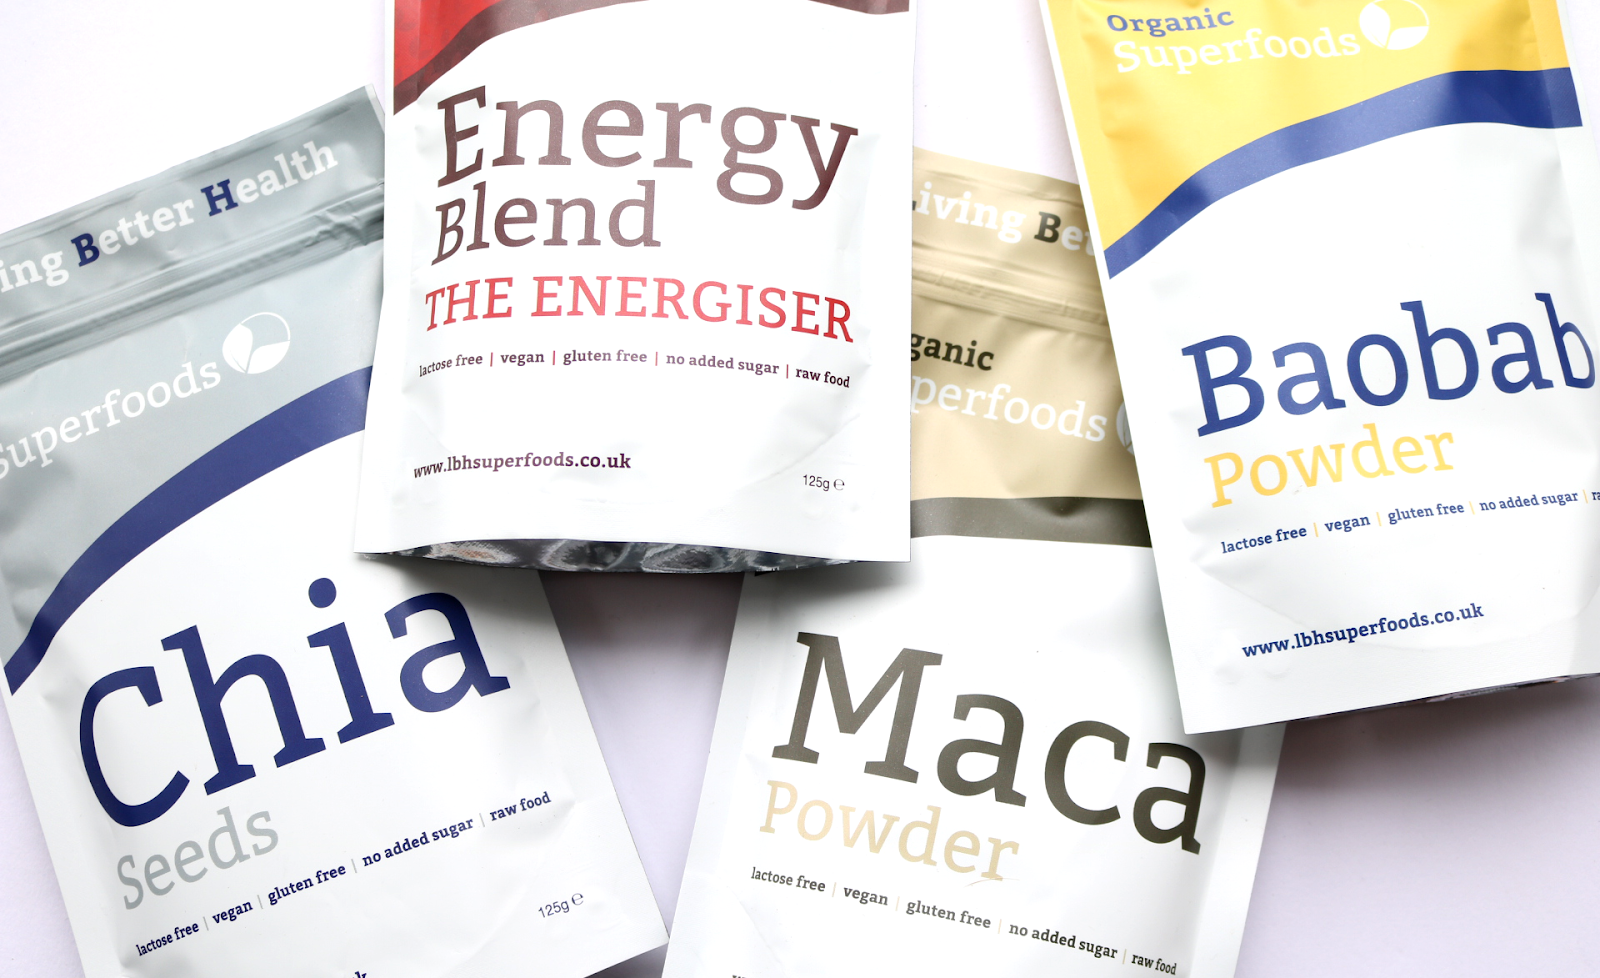 Living Better Health Superfoods - Chia Seeds, Energy Blend Energiser, Baobab & Maca review